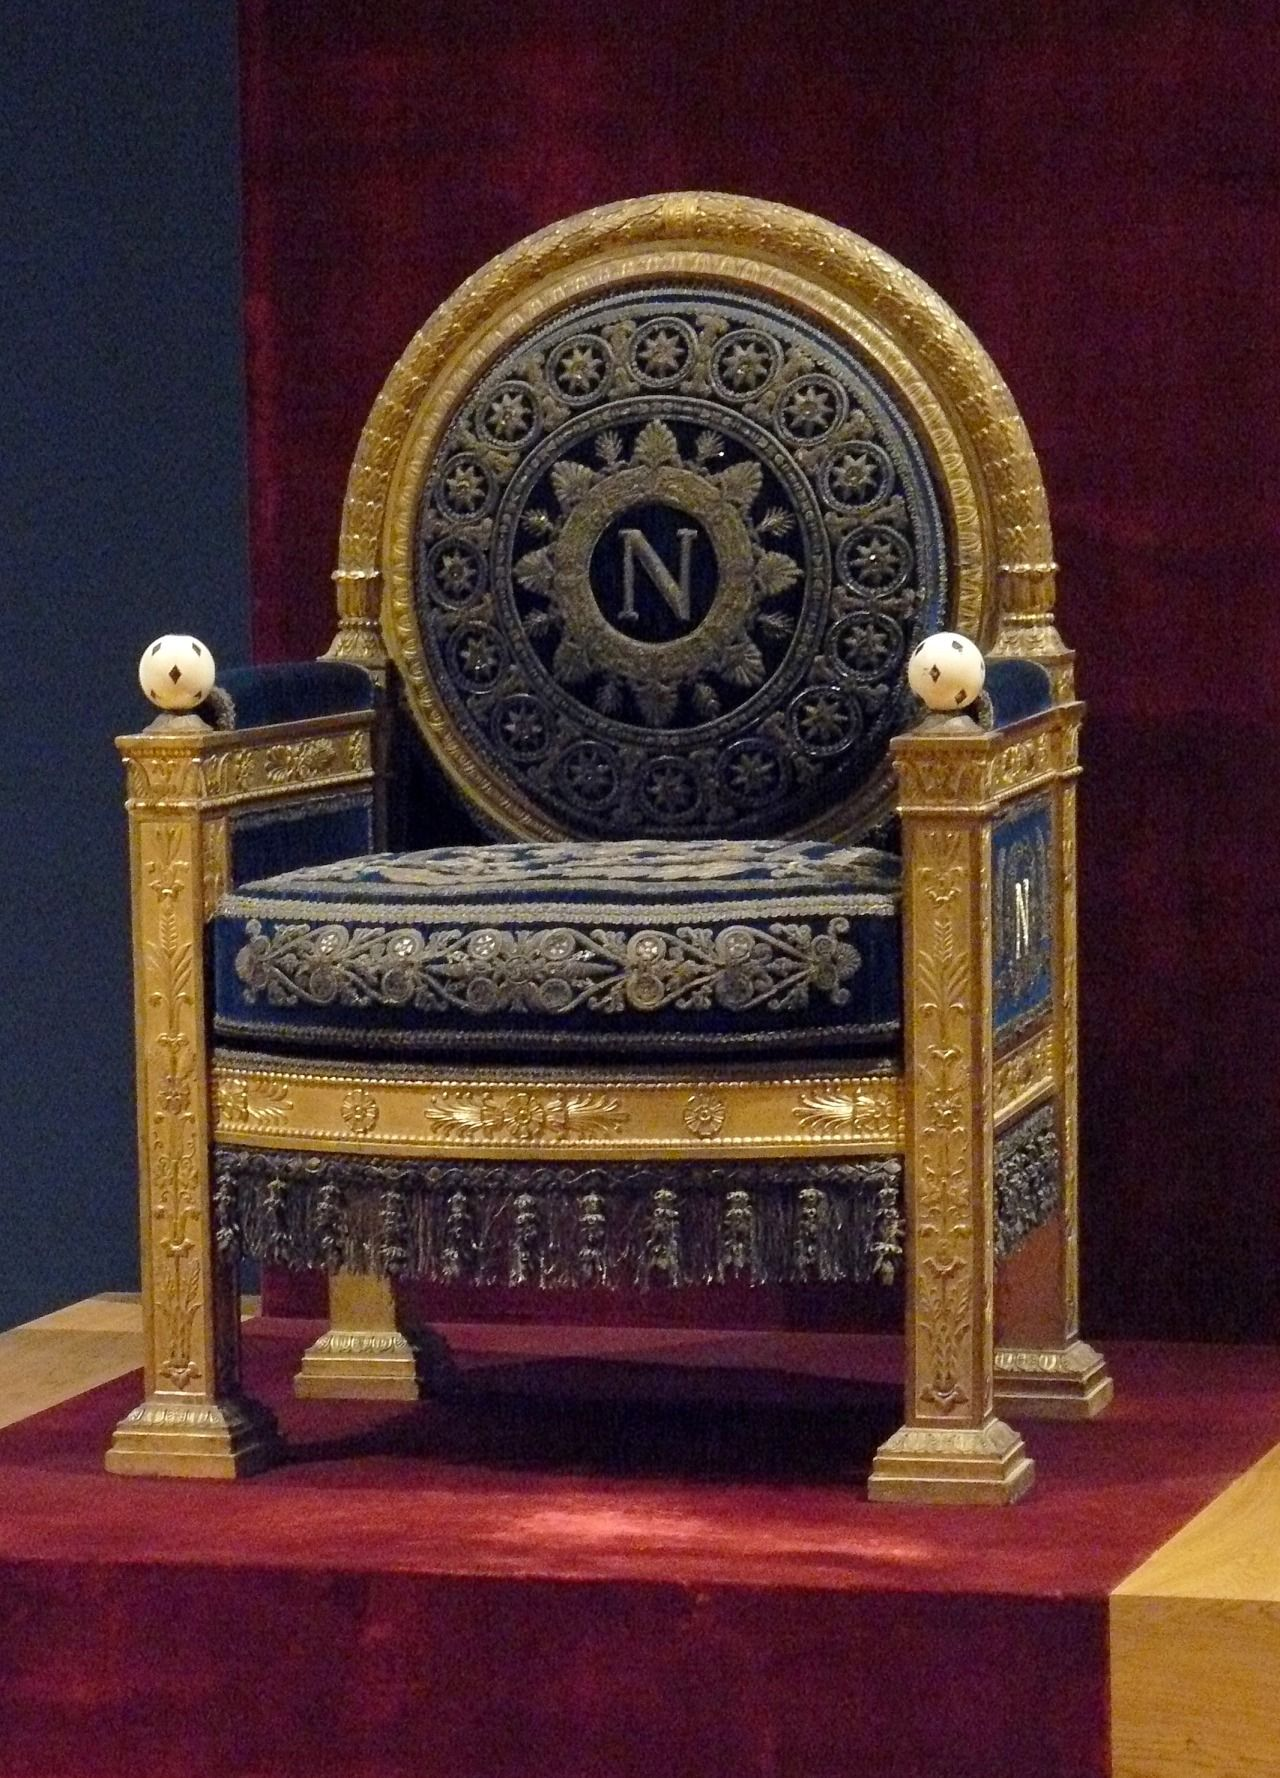 Throne Room Tuileries Palace Paris France This Is The